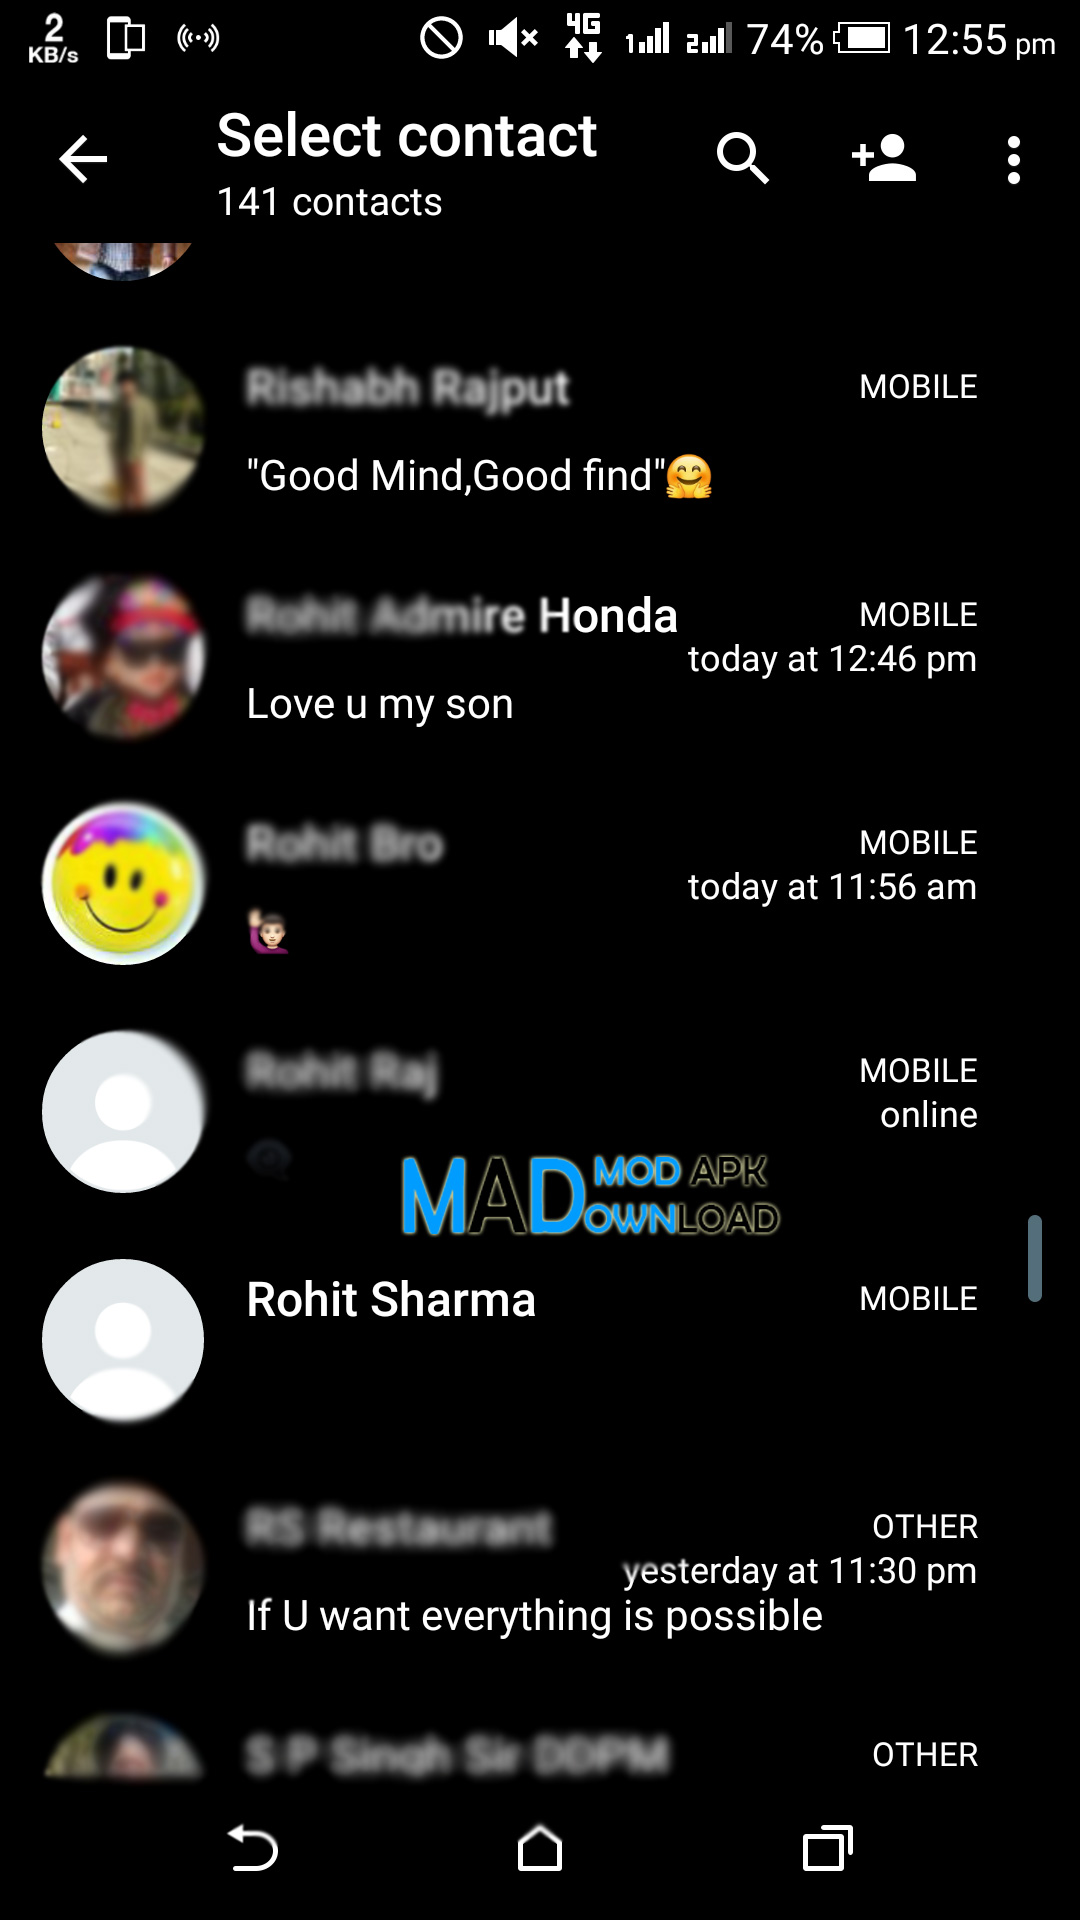 GBWhatsApp APK Download For Android Latest Version 6 40 (No Root)